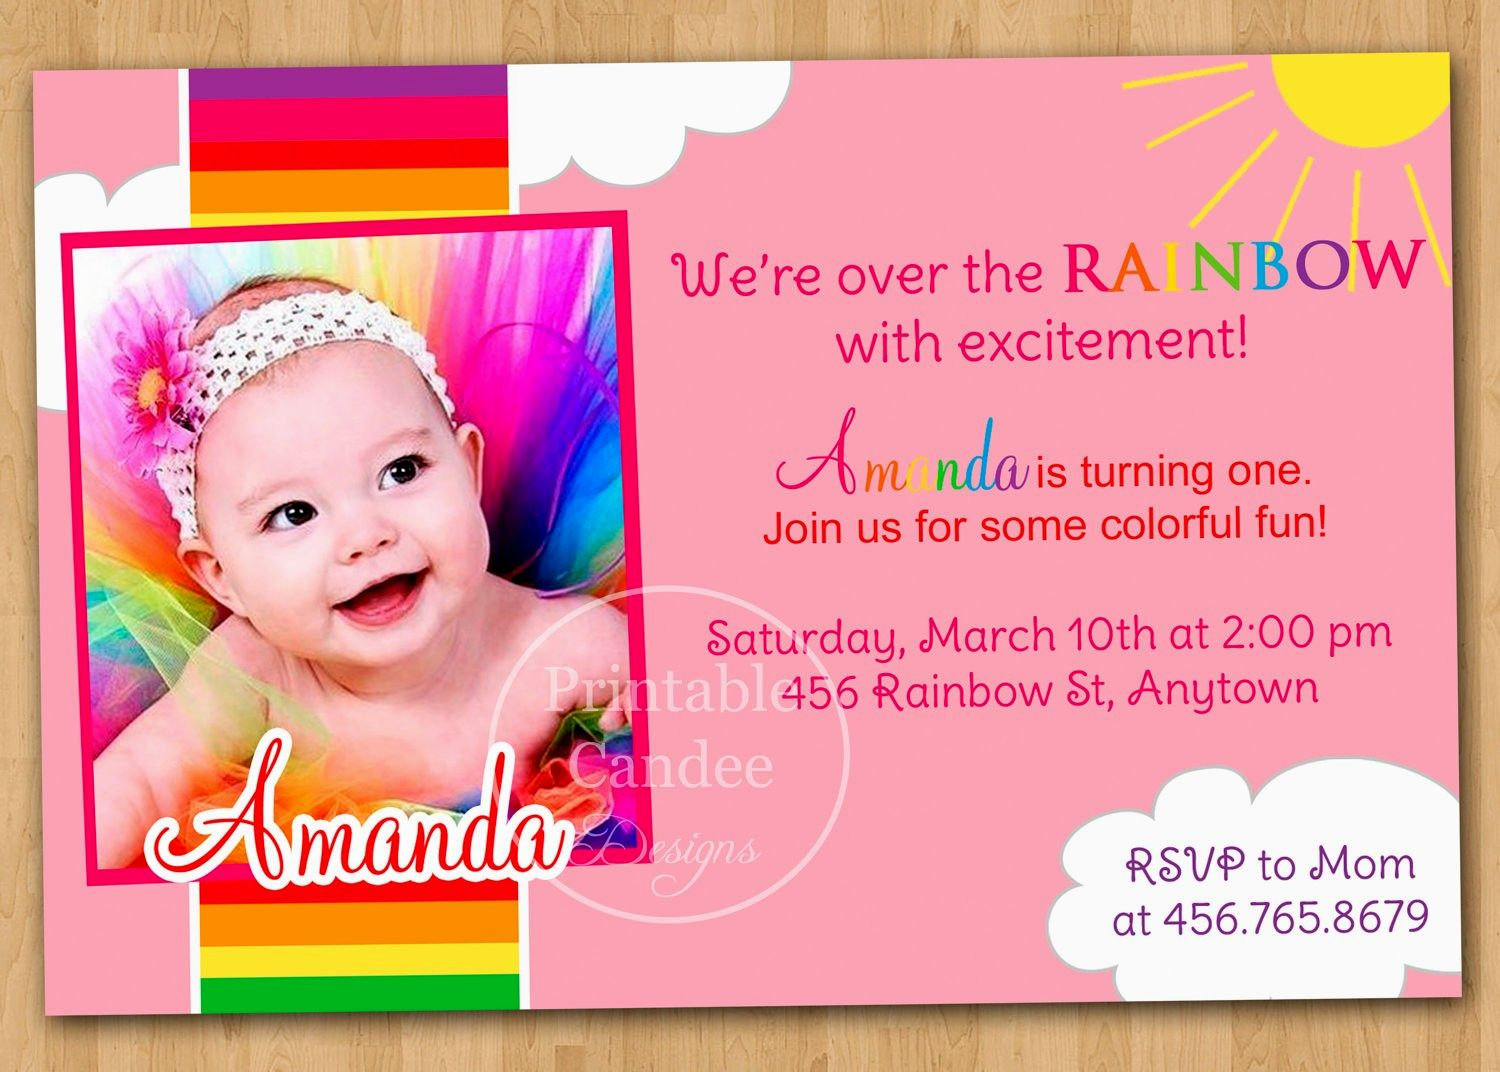 birthday party invitation cards online india ; design-birthday-invitation-cards-online-free-india-first-birthday-invitation-cards-designs-india-first-birthday-invitations-design-first-birthday-invitations-design